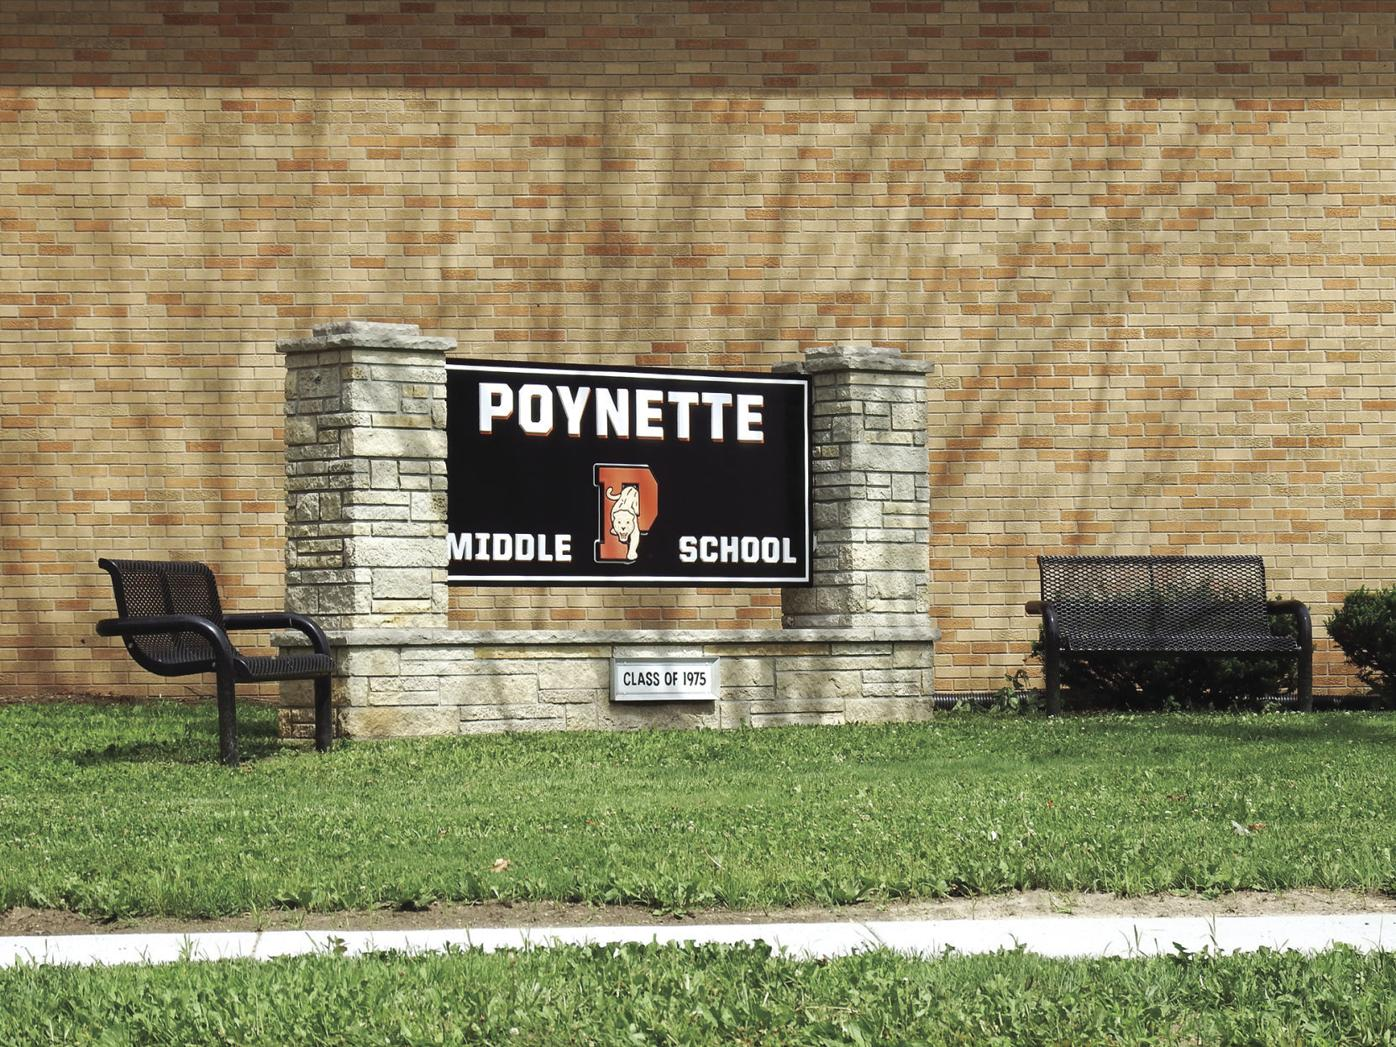 Poynette Middle School